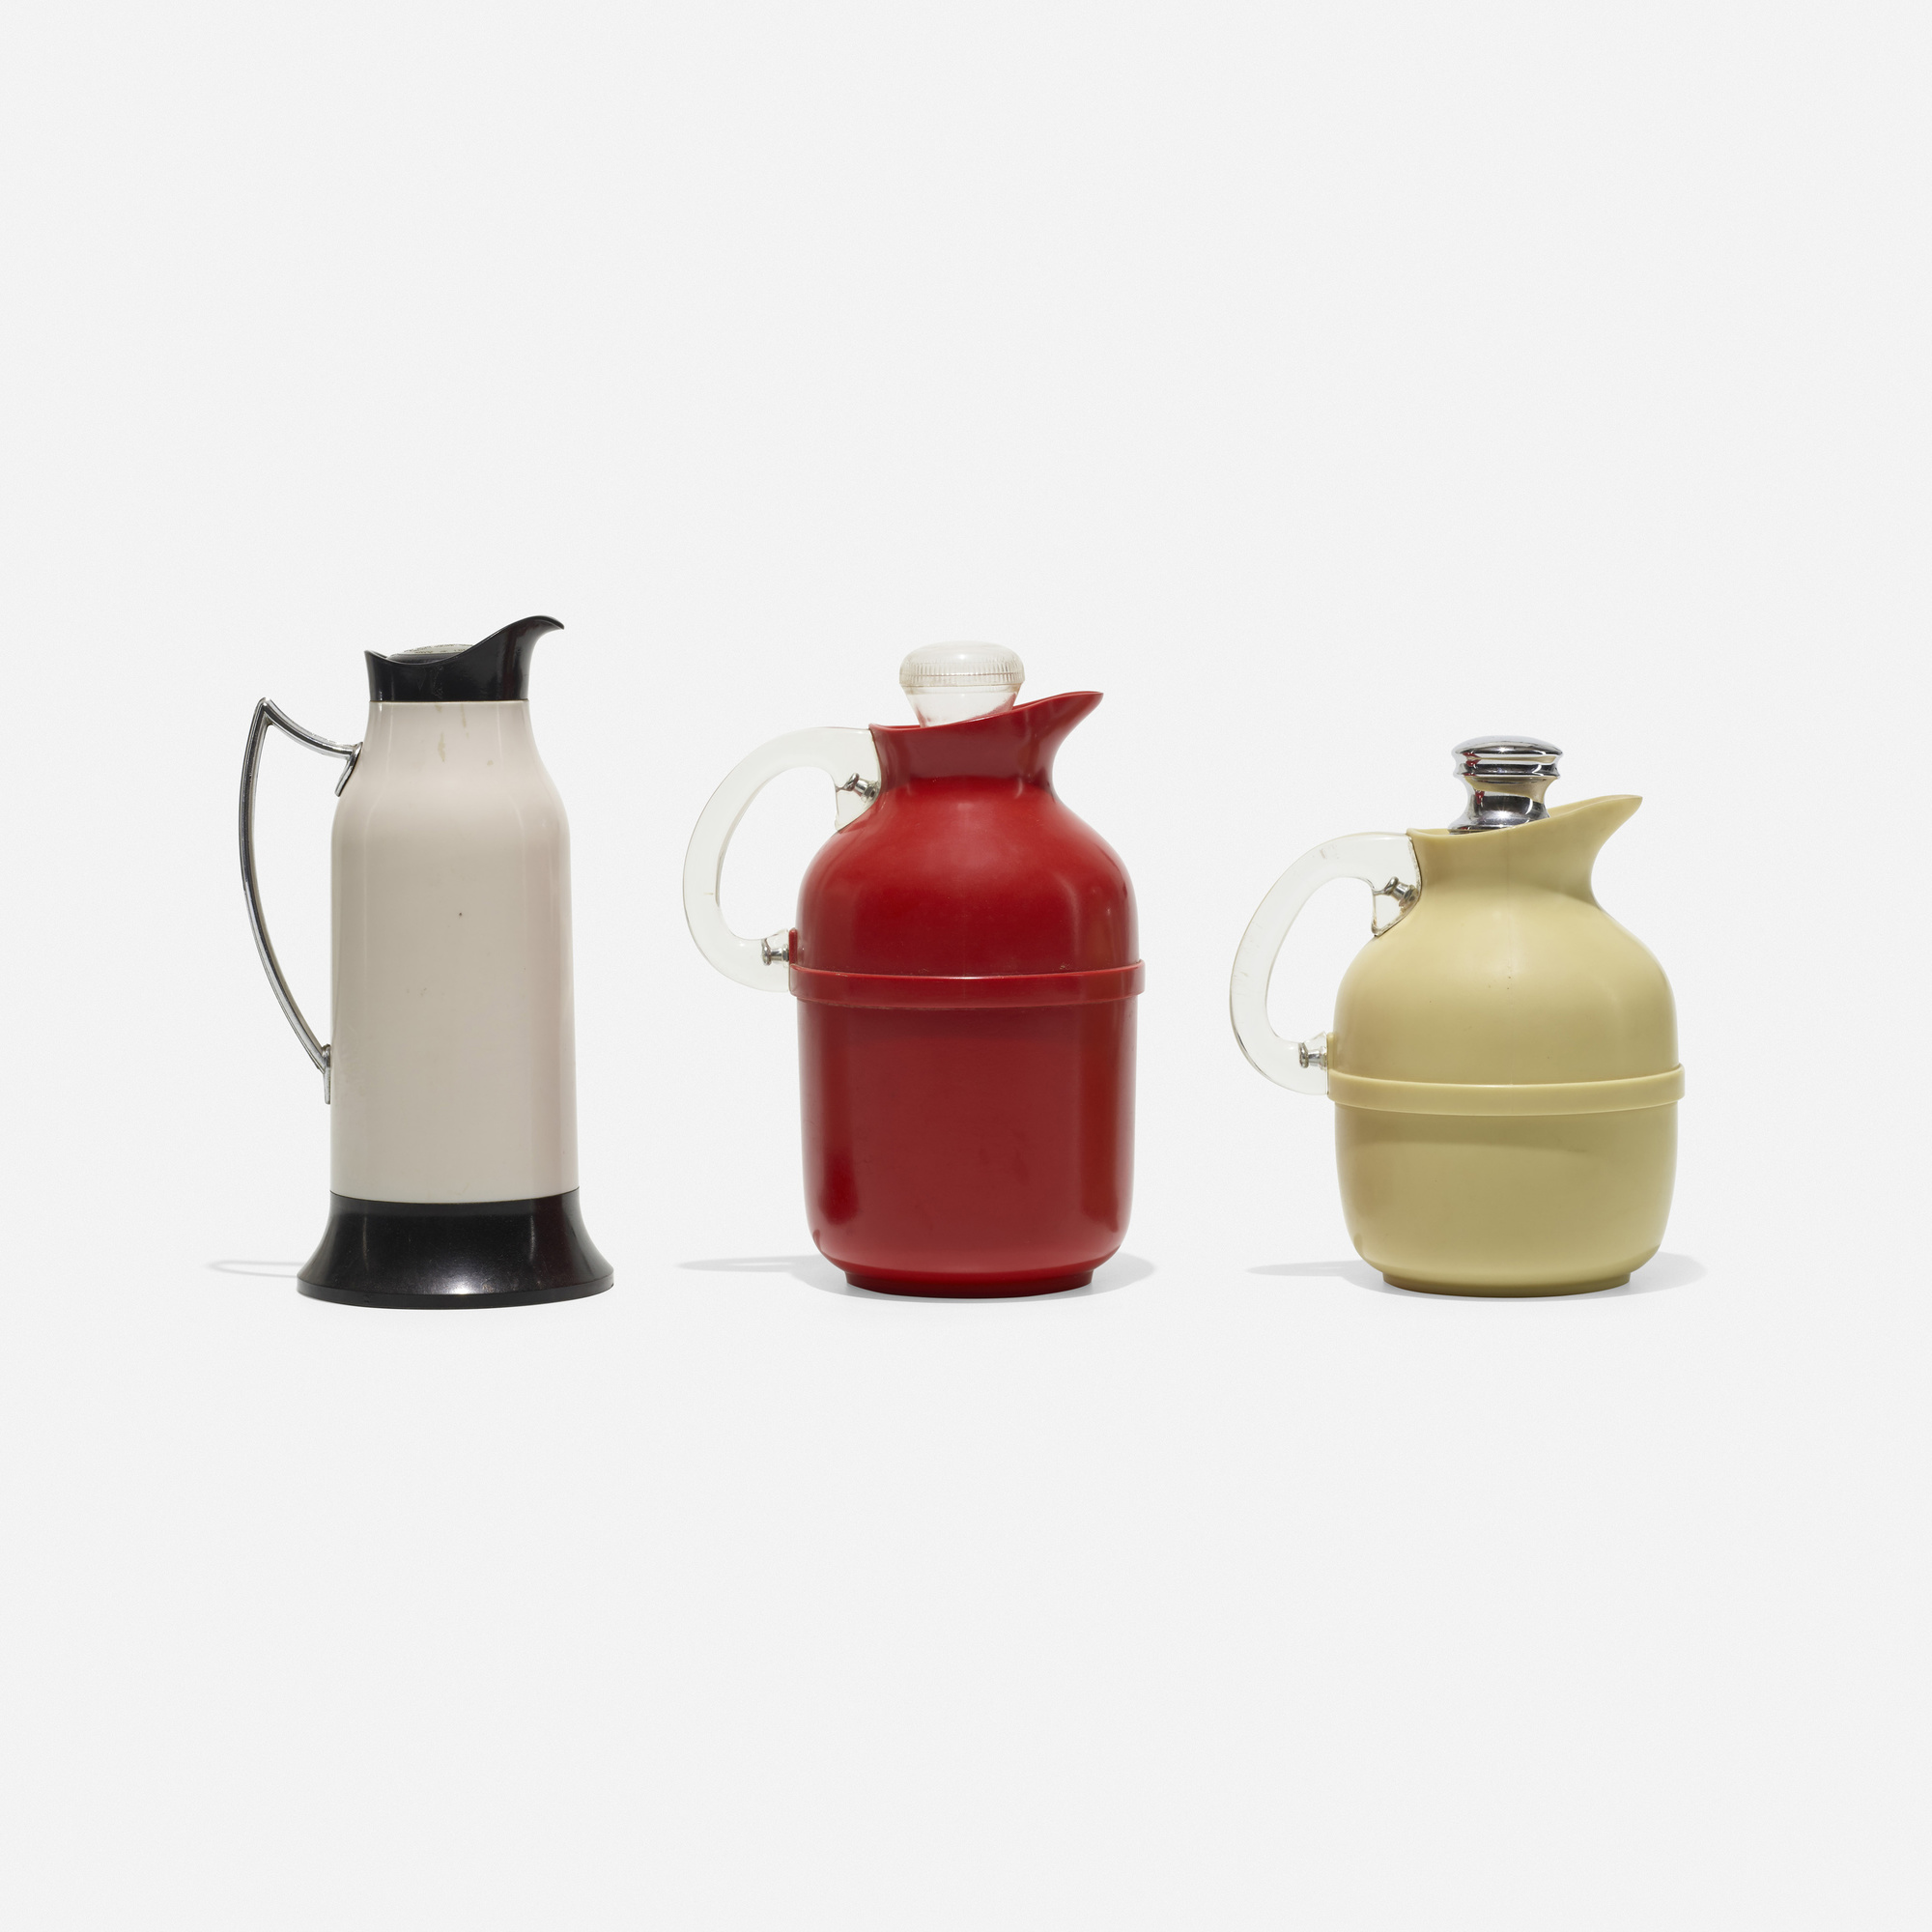 139: Thermos and Acme Vacuum Flask Co. Ltd. / collection of three flasks (1 of 1)